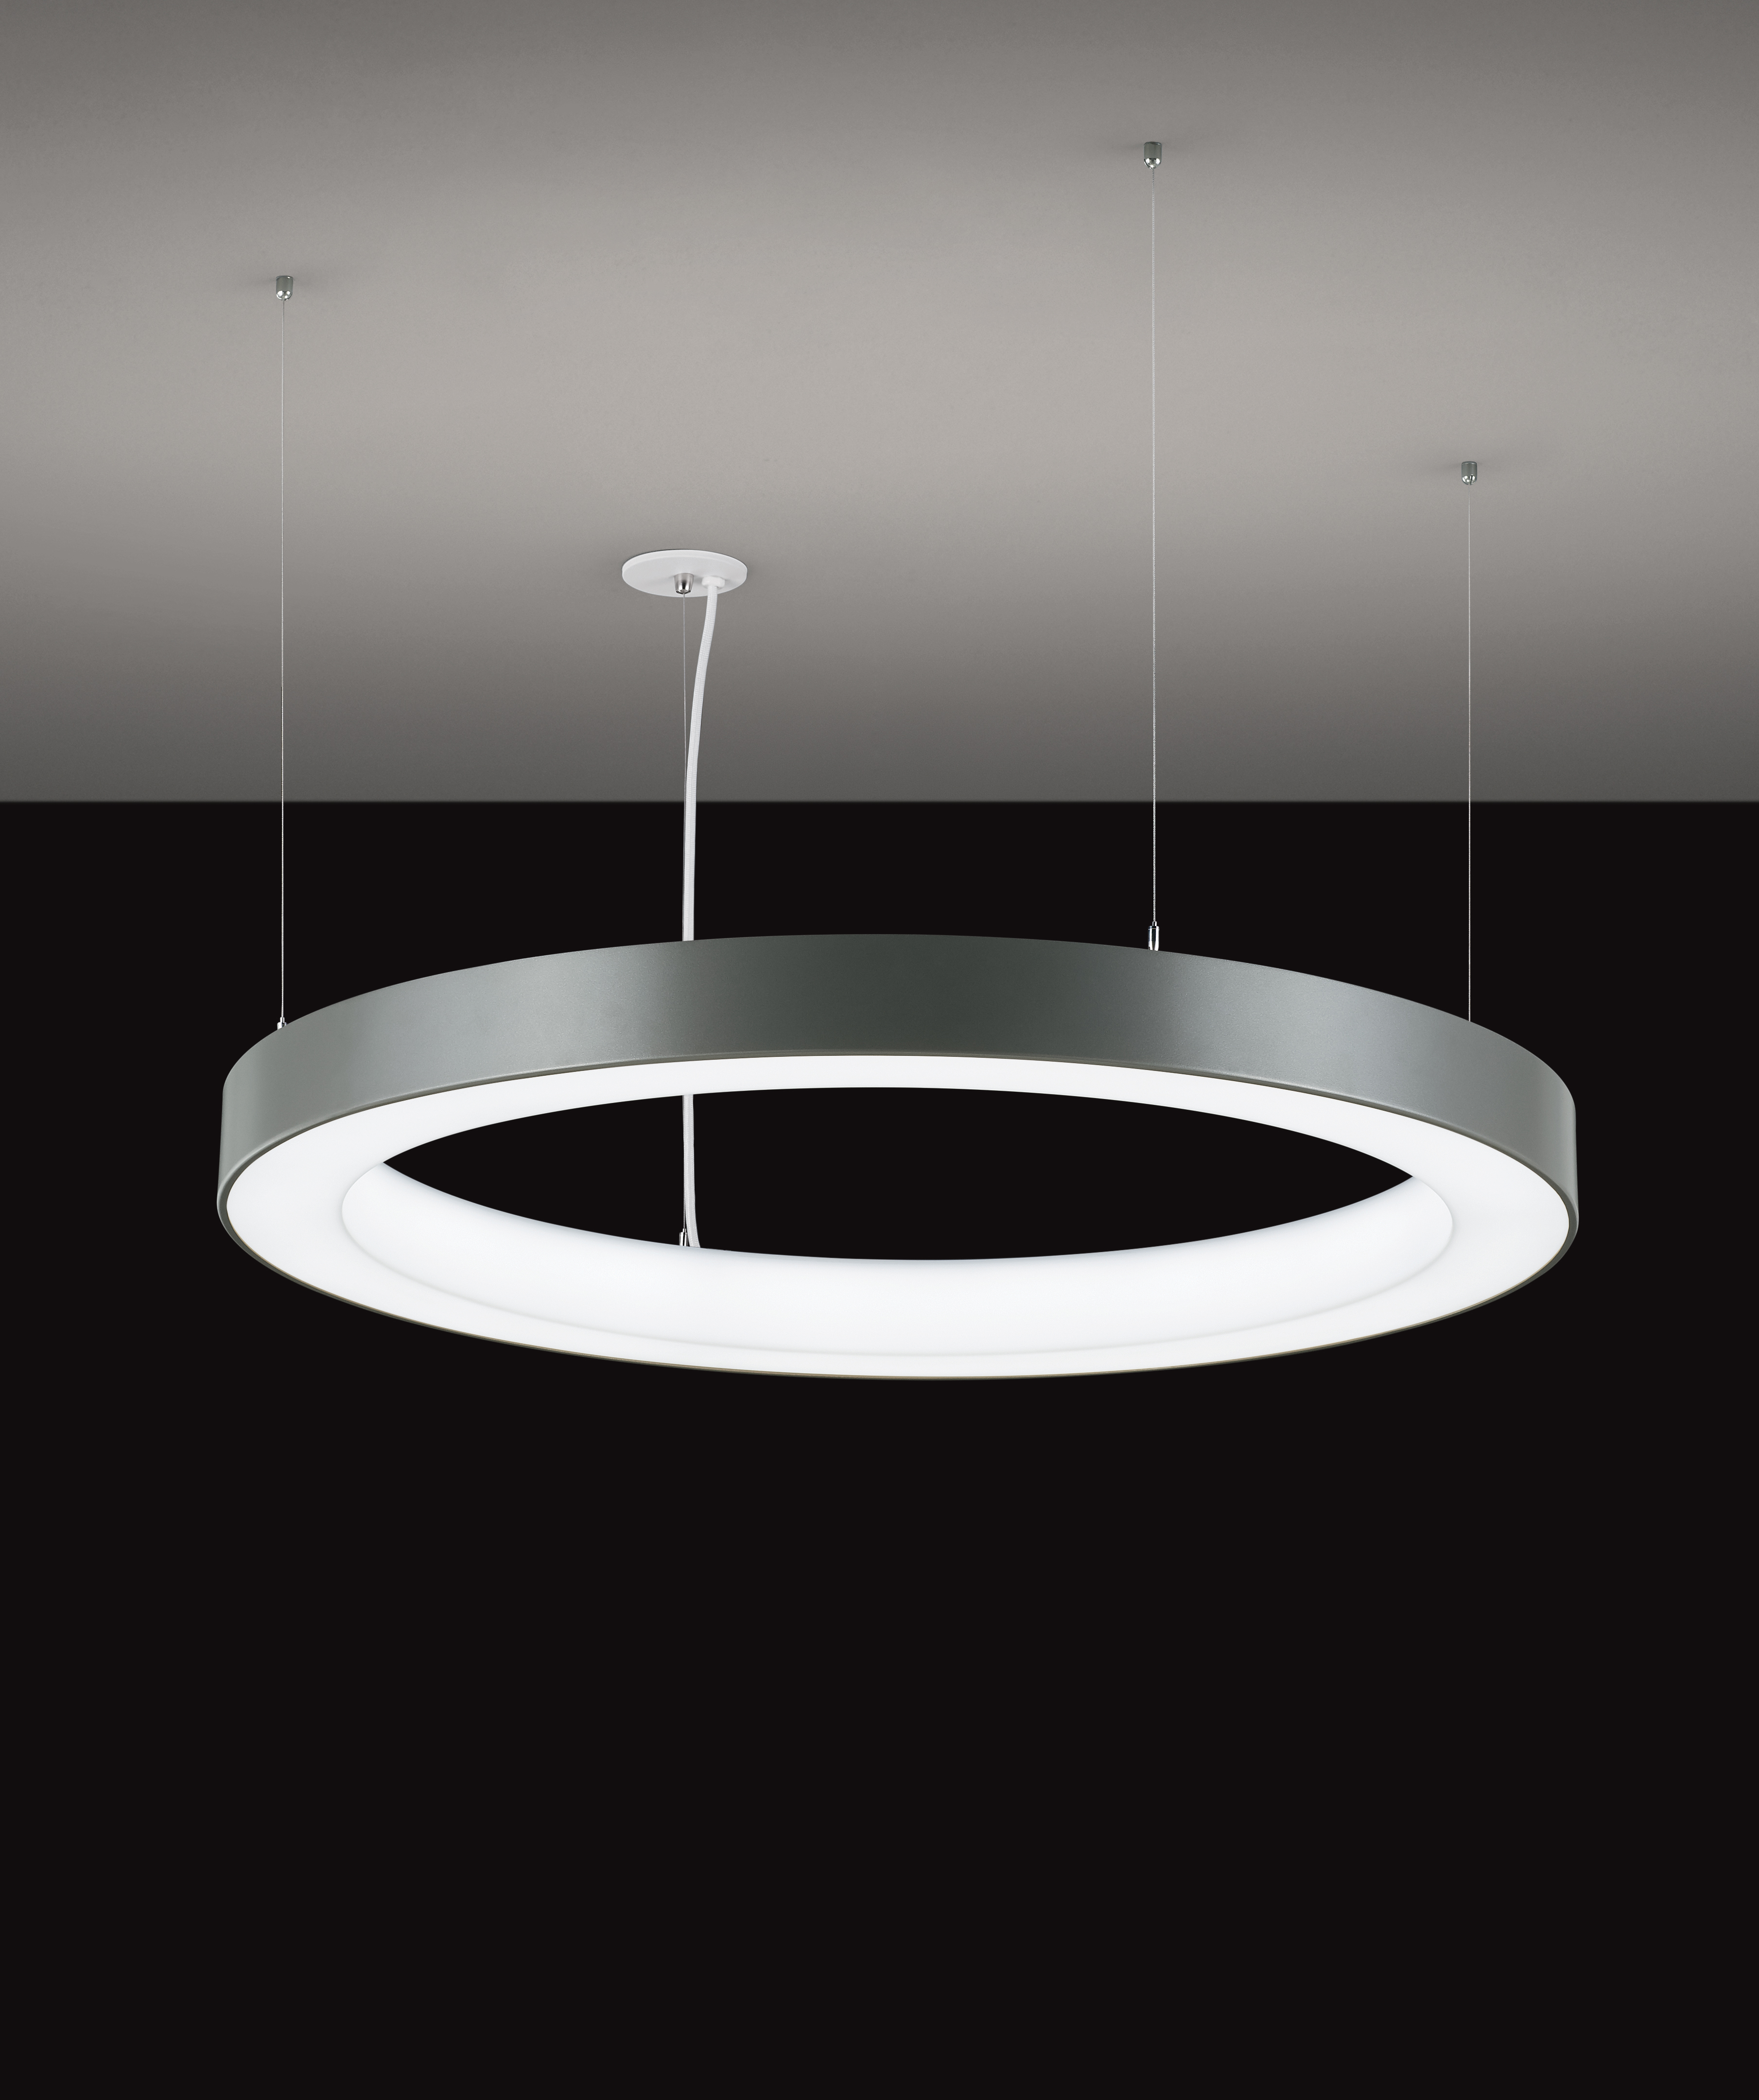 Ceiling Fixtures Glowring™ Pendant - Ocl Architectural Lighting